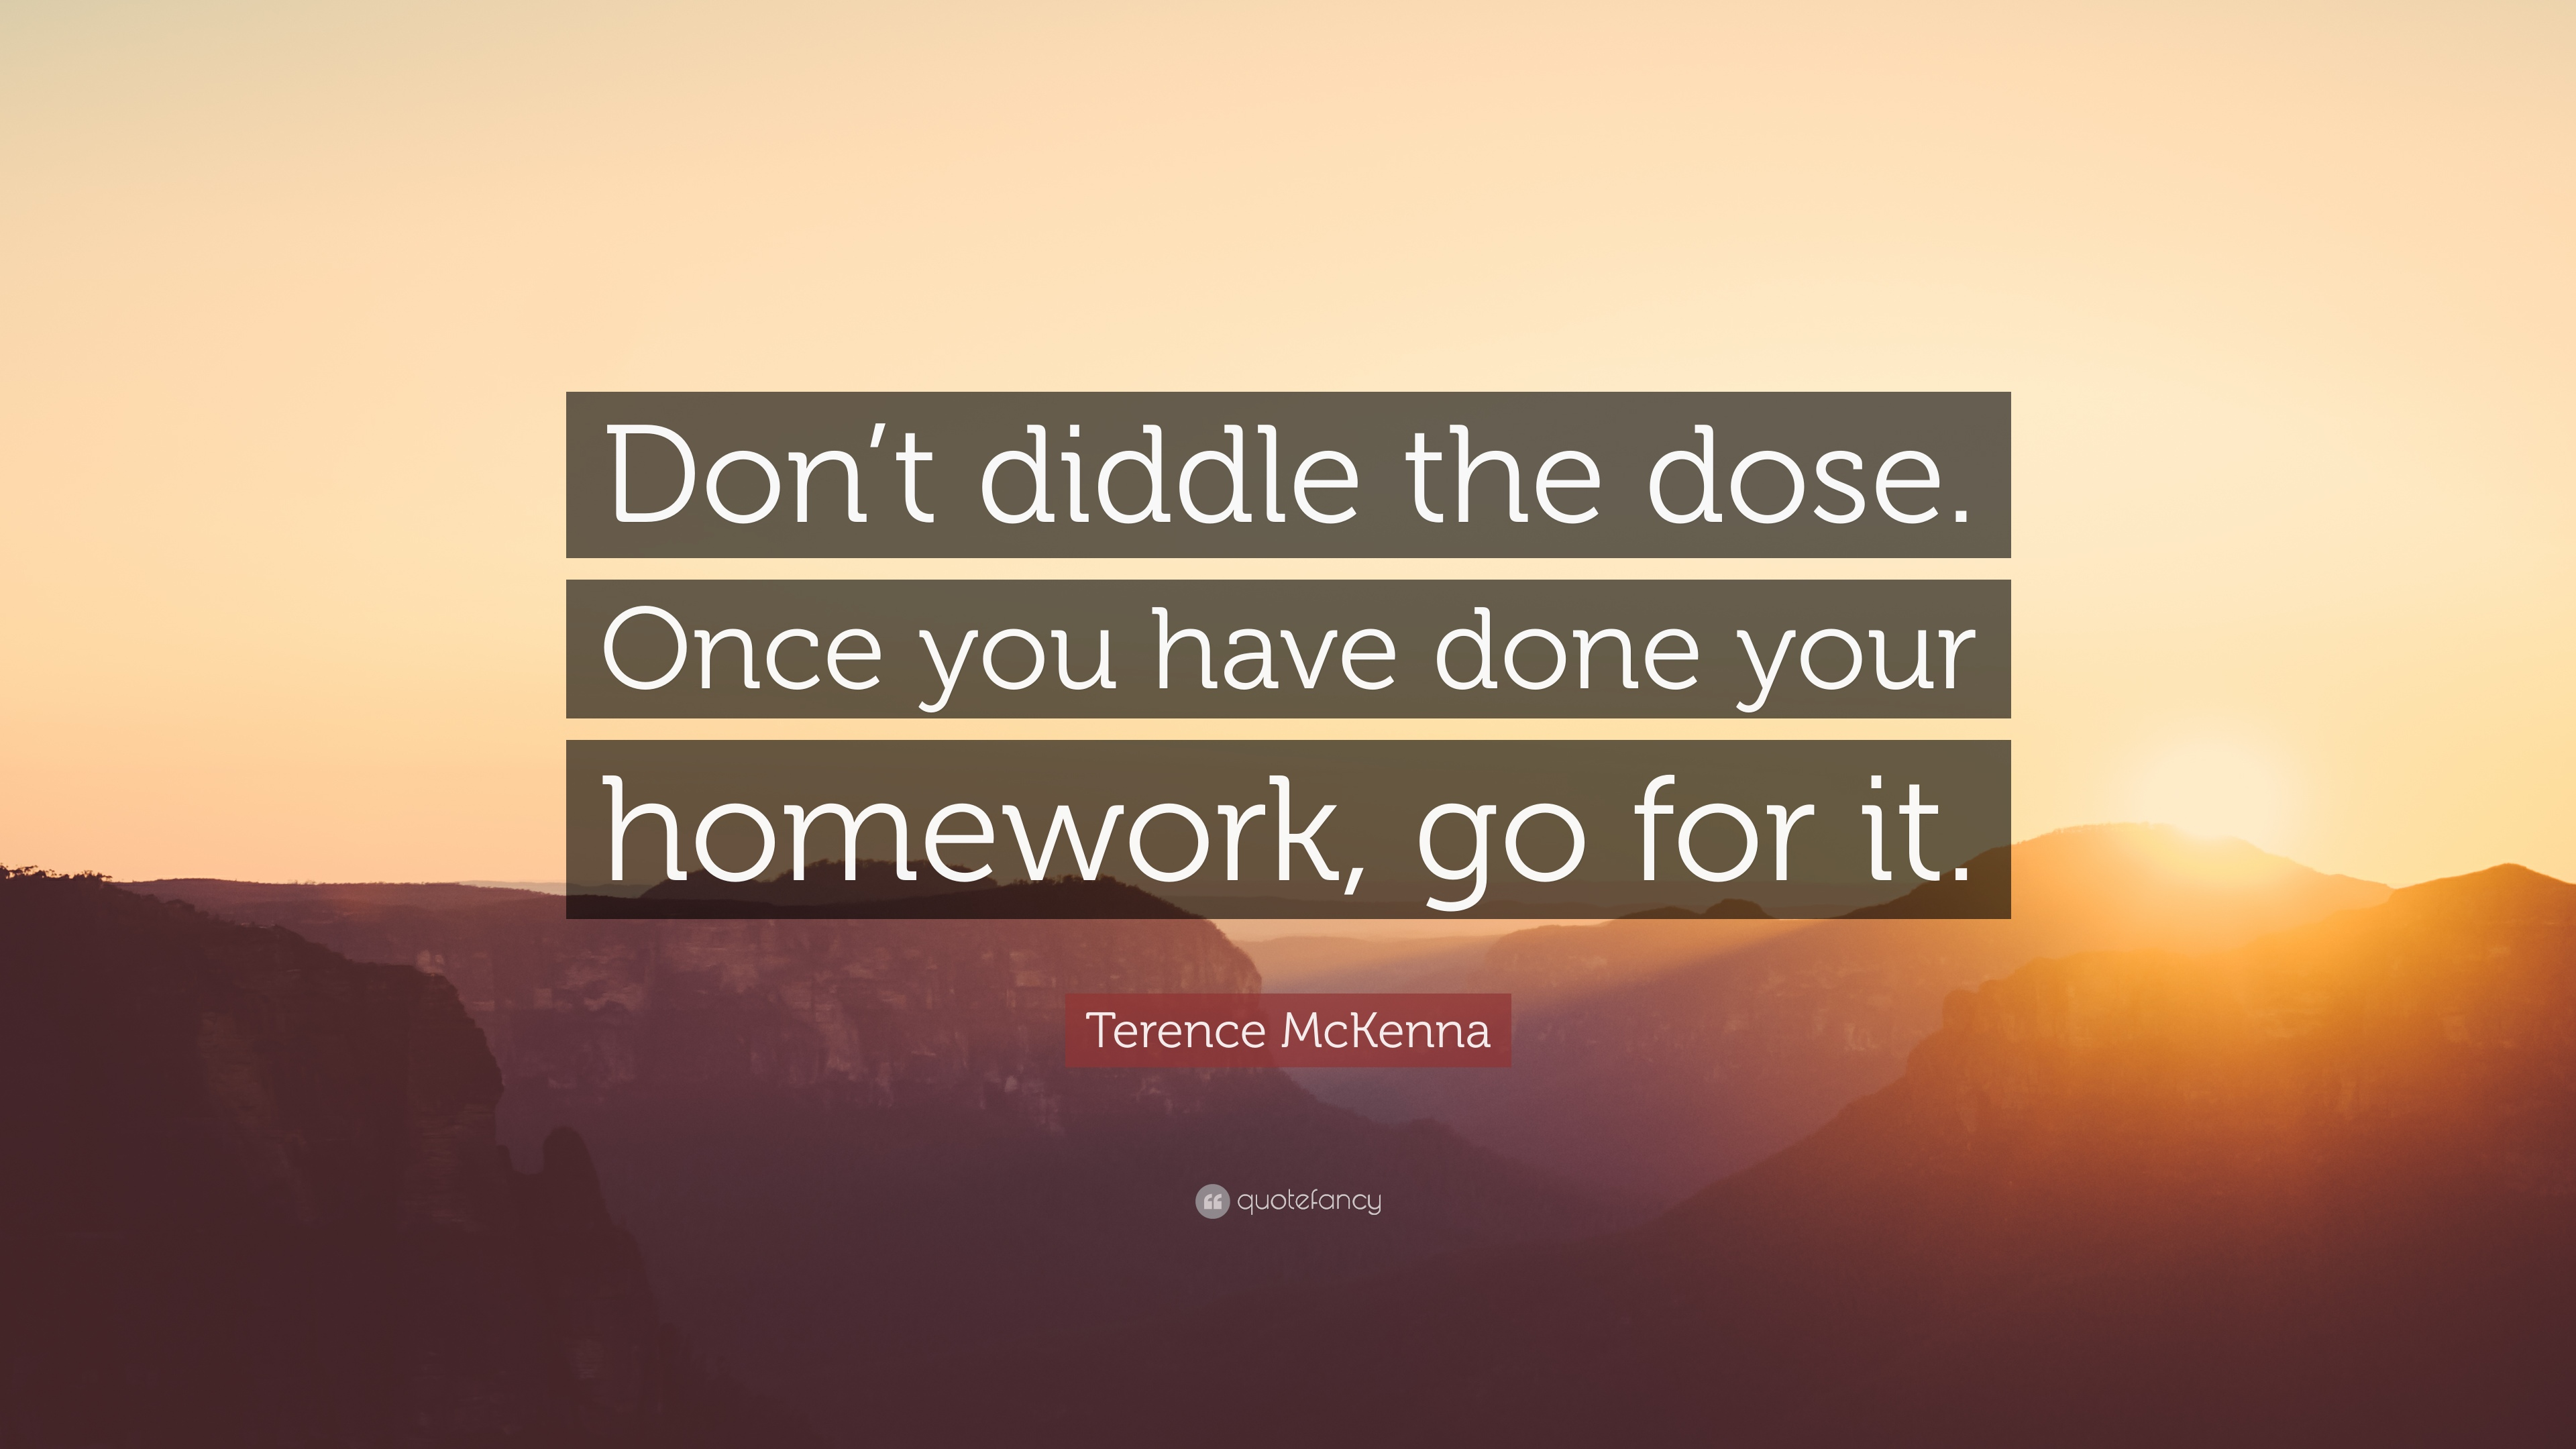 terence mckenna quote don t diddle the dose once you have done terence mckenna quote don t diddle the dose once you have done